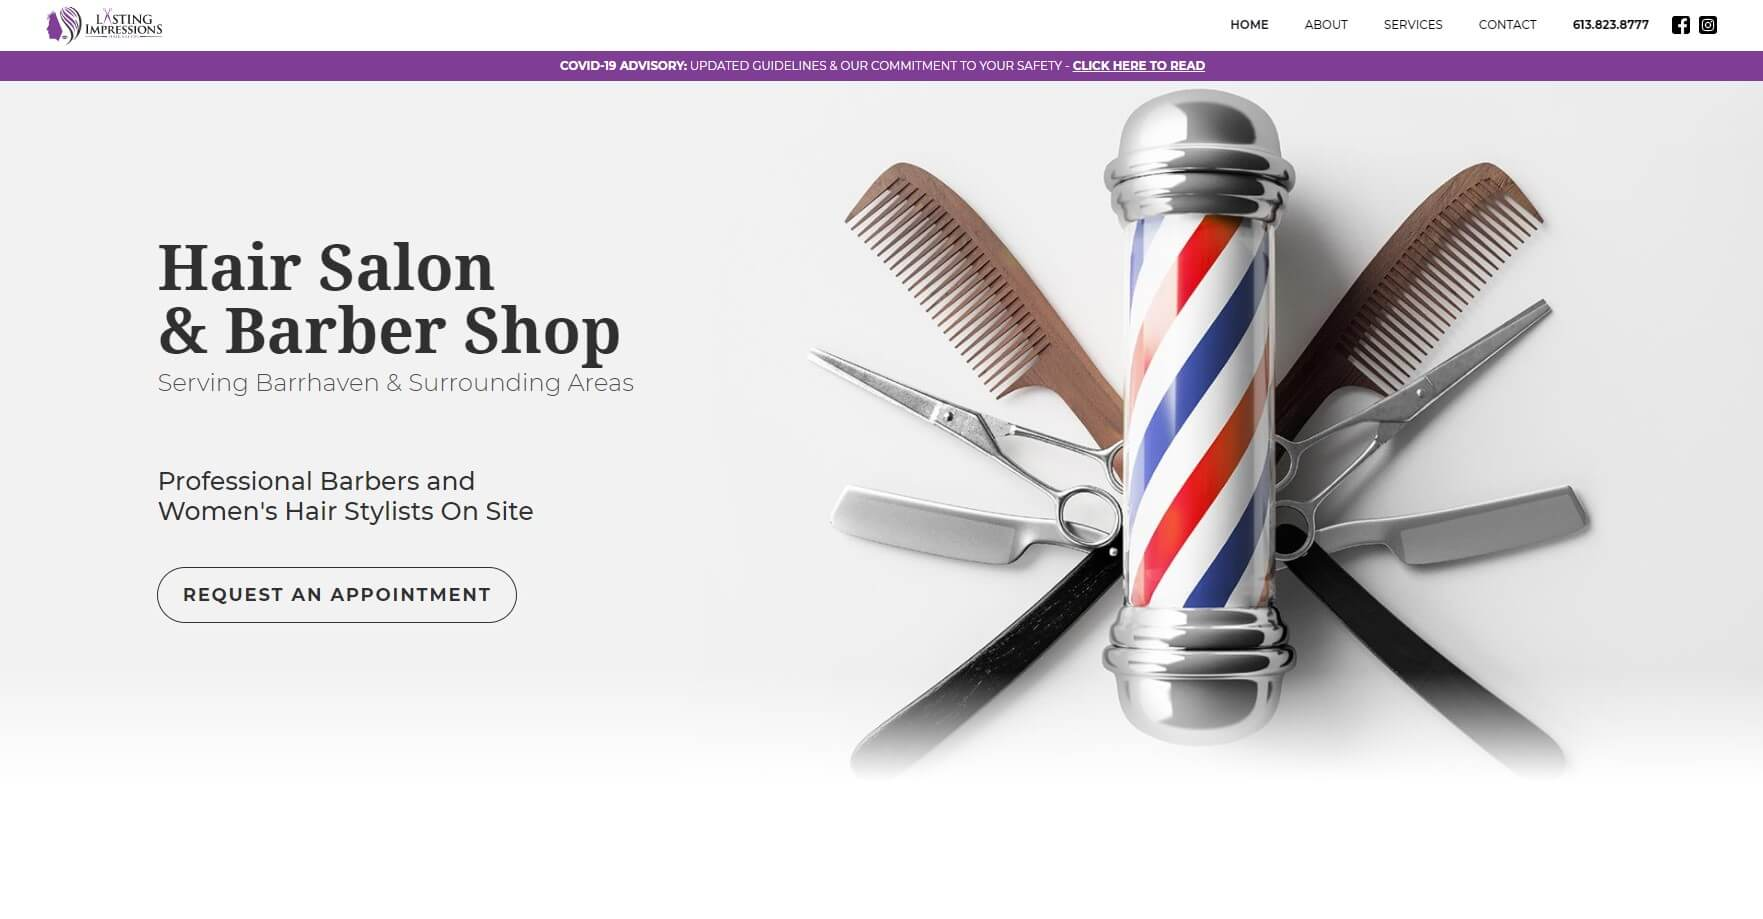 Hair salon & barber shop website design screenshot